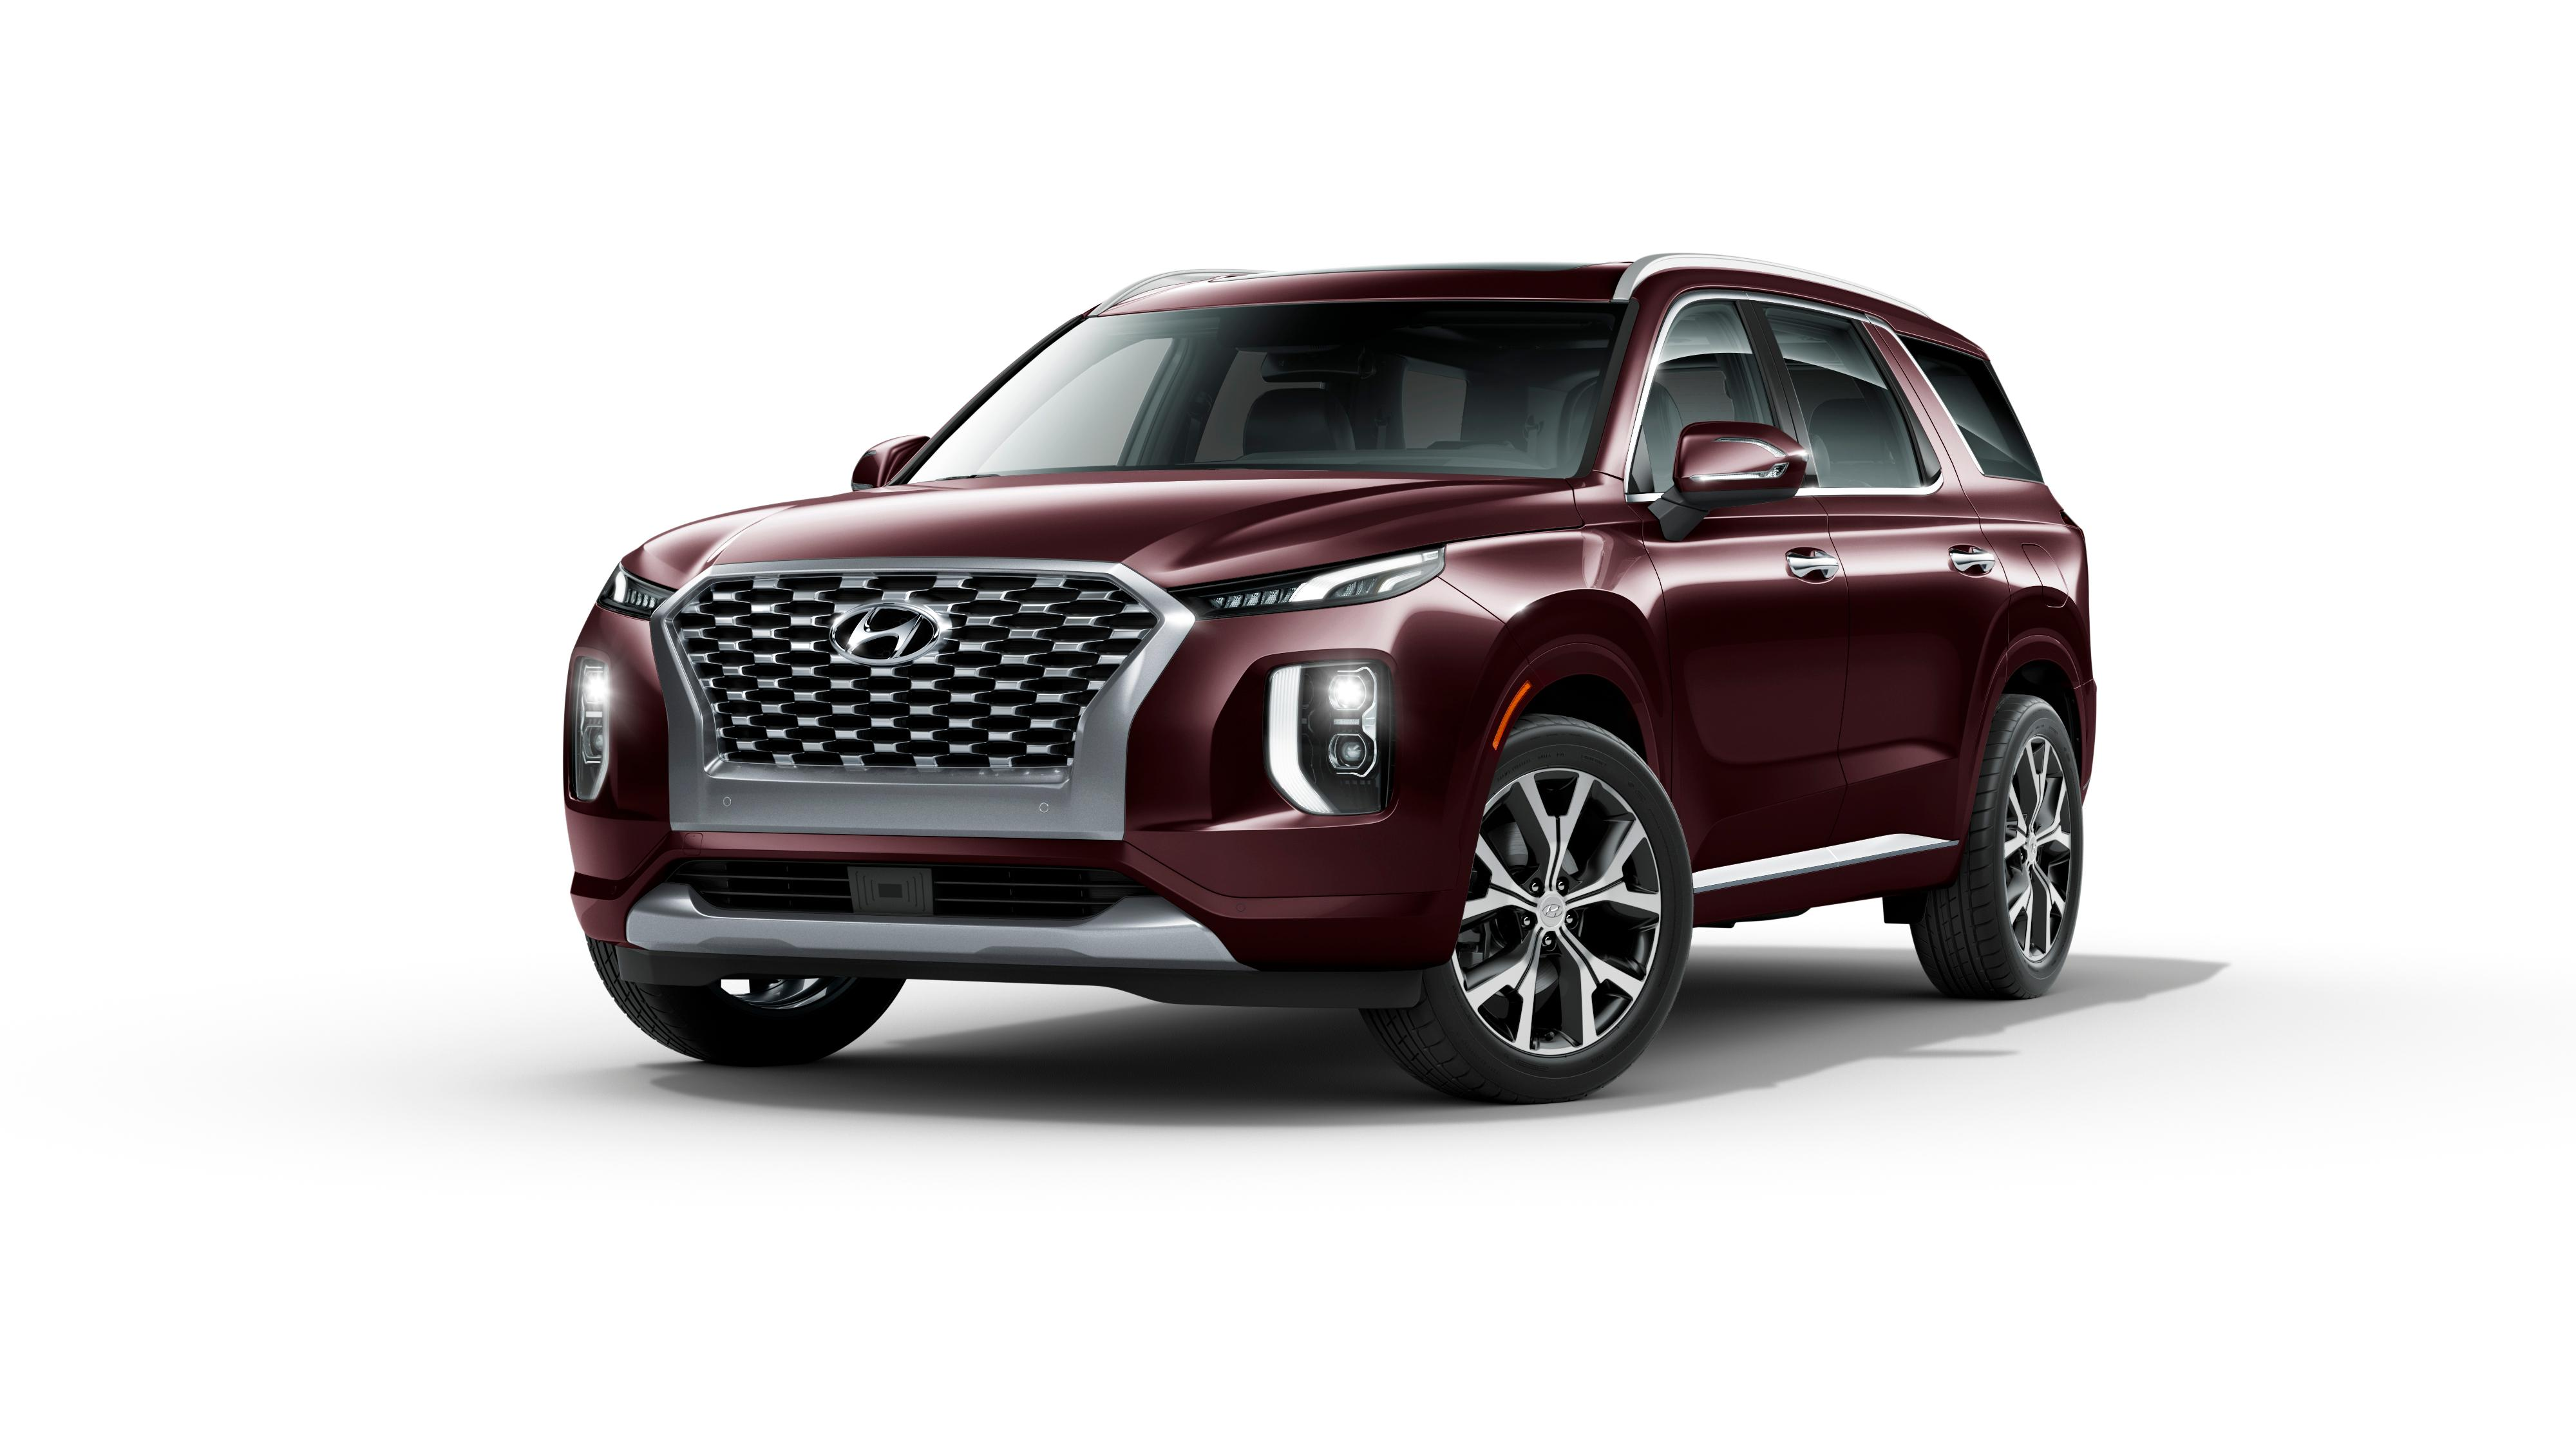 2021 Hyundai Palisade Vehicle Photo in Merrillville, IN 46410